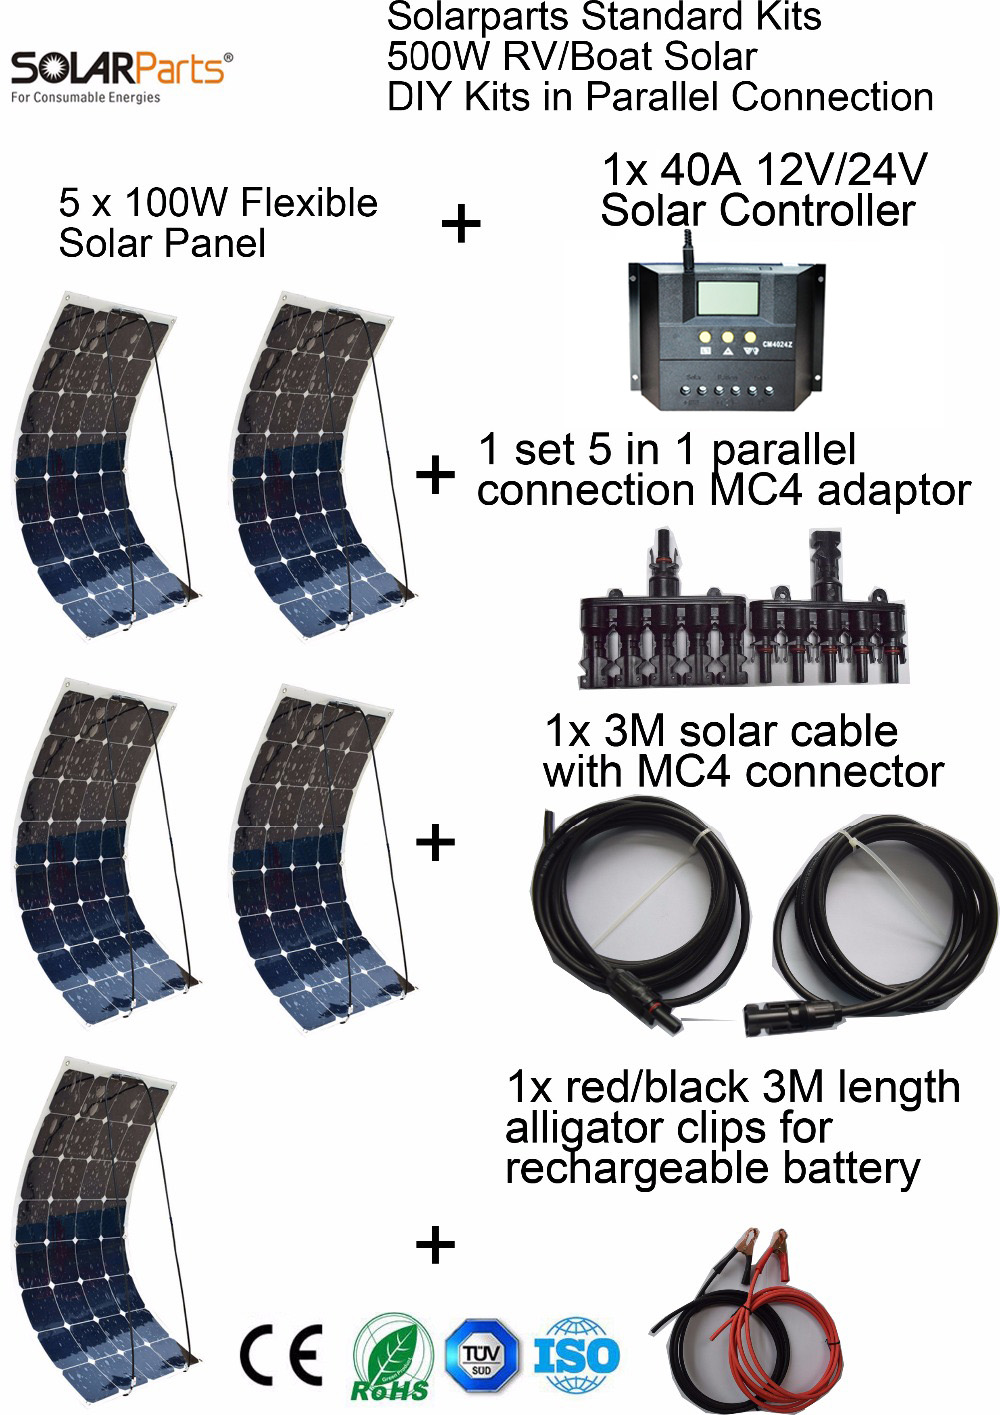 Boguang Standard Kits 500W DIY RV/Boat Kits Solar System 100W flexible solar panel+controller+cable outdoor light led module. boguang 500w semi flexible solar panel solar system efficient cell diy kit module 50a mppt controller adapter mc4 connector